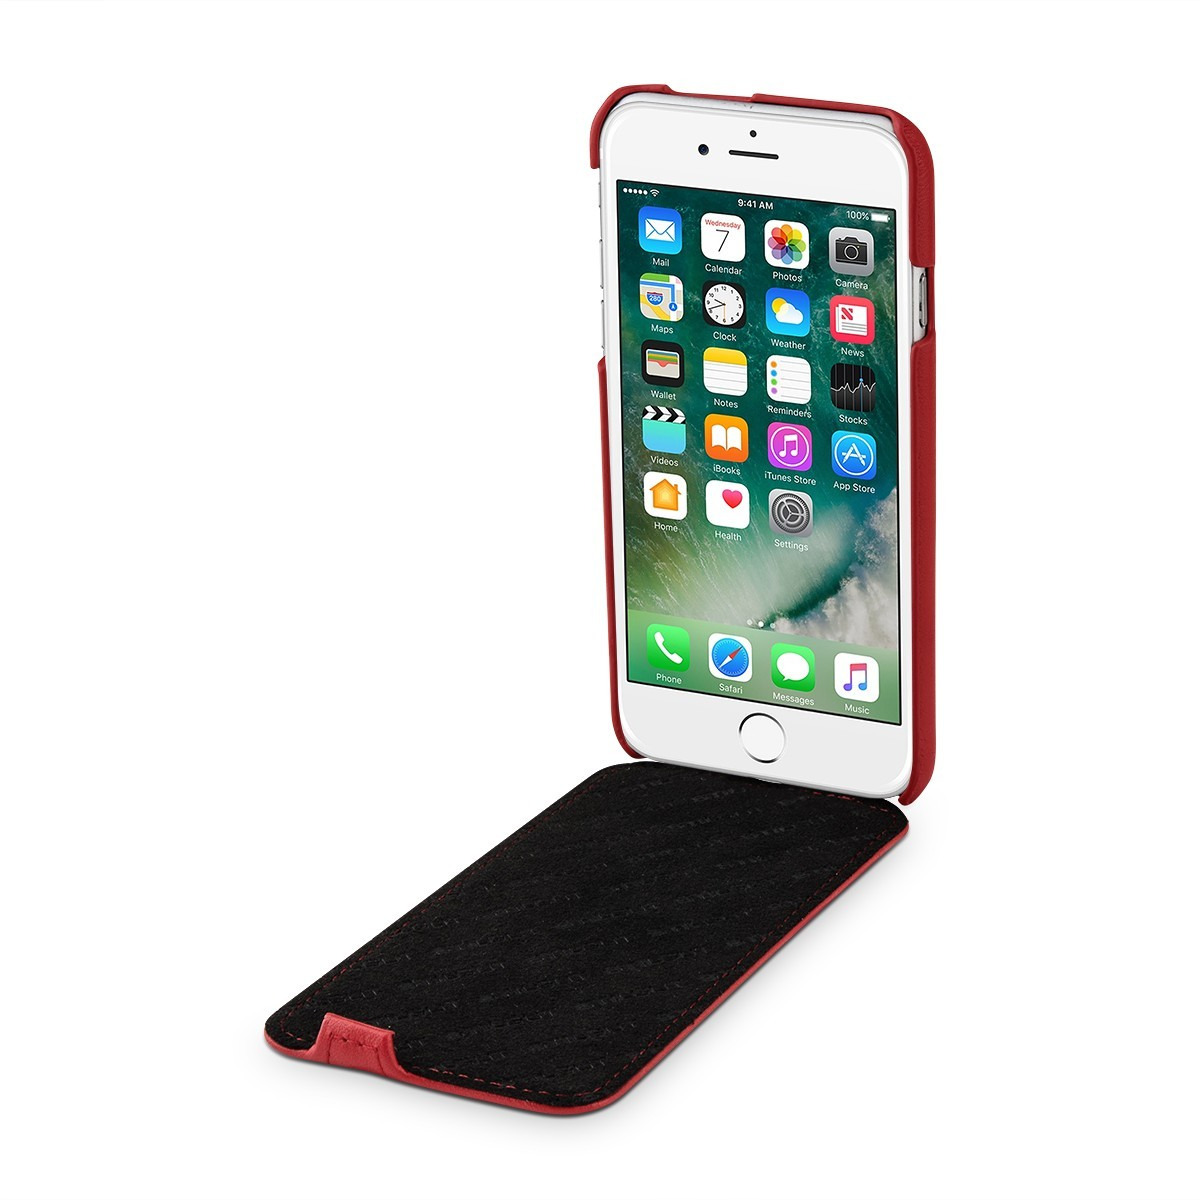 Etui iPhone 7 ultraslim rouge nappa en cuir véritable - Stilgut